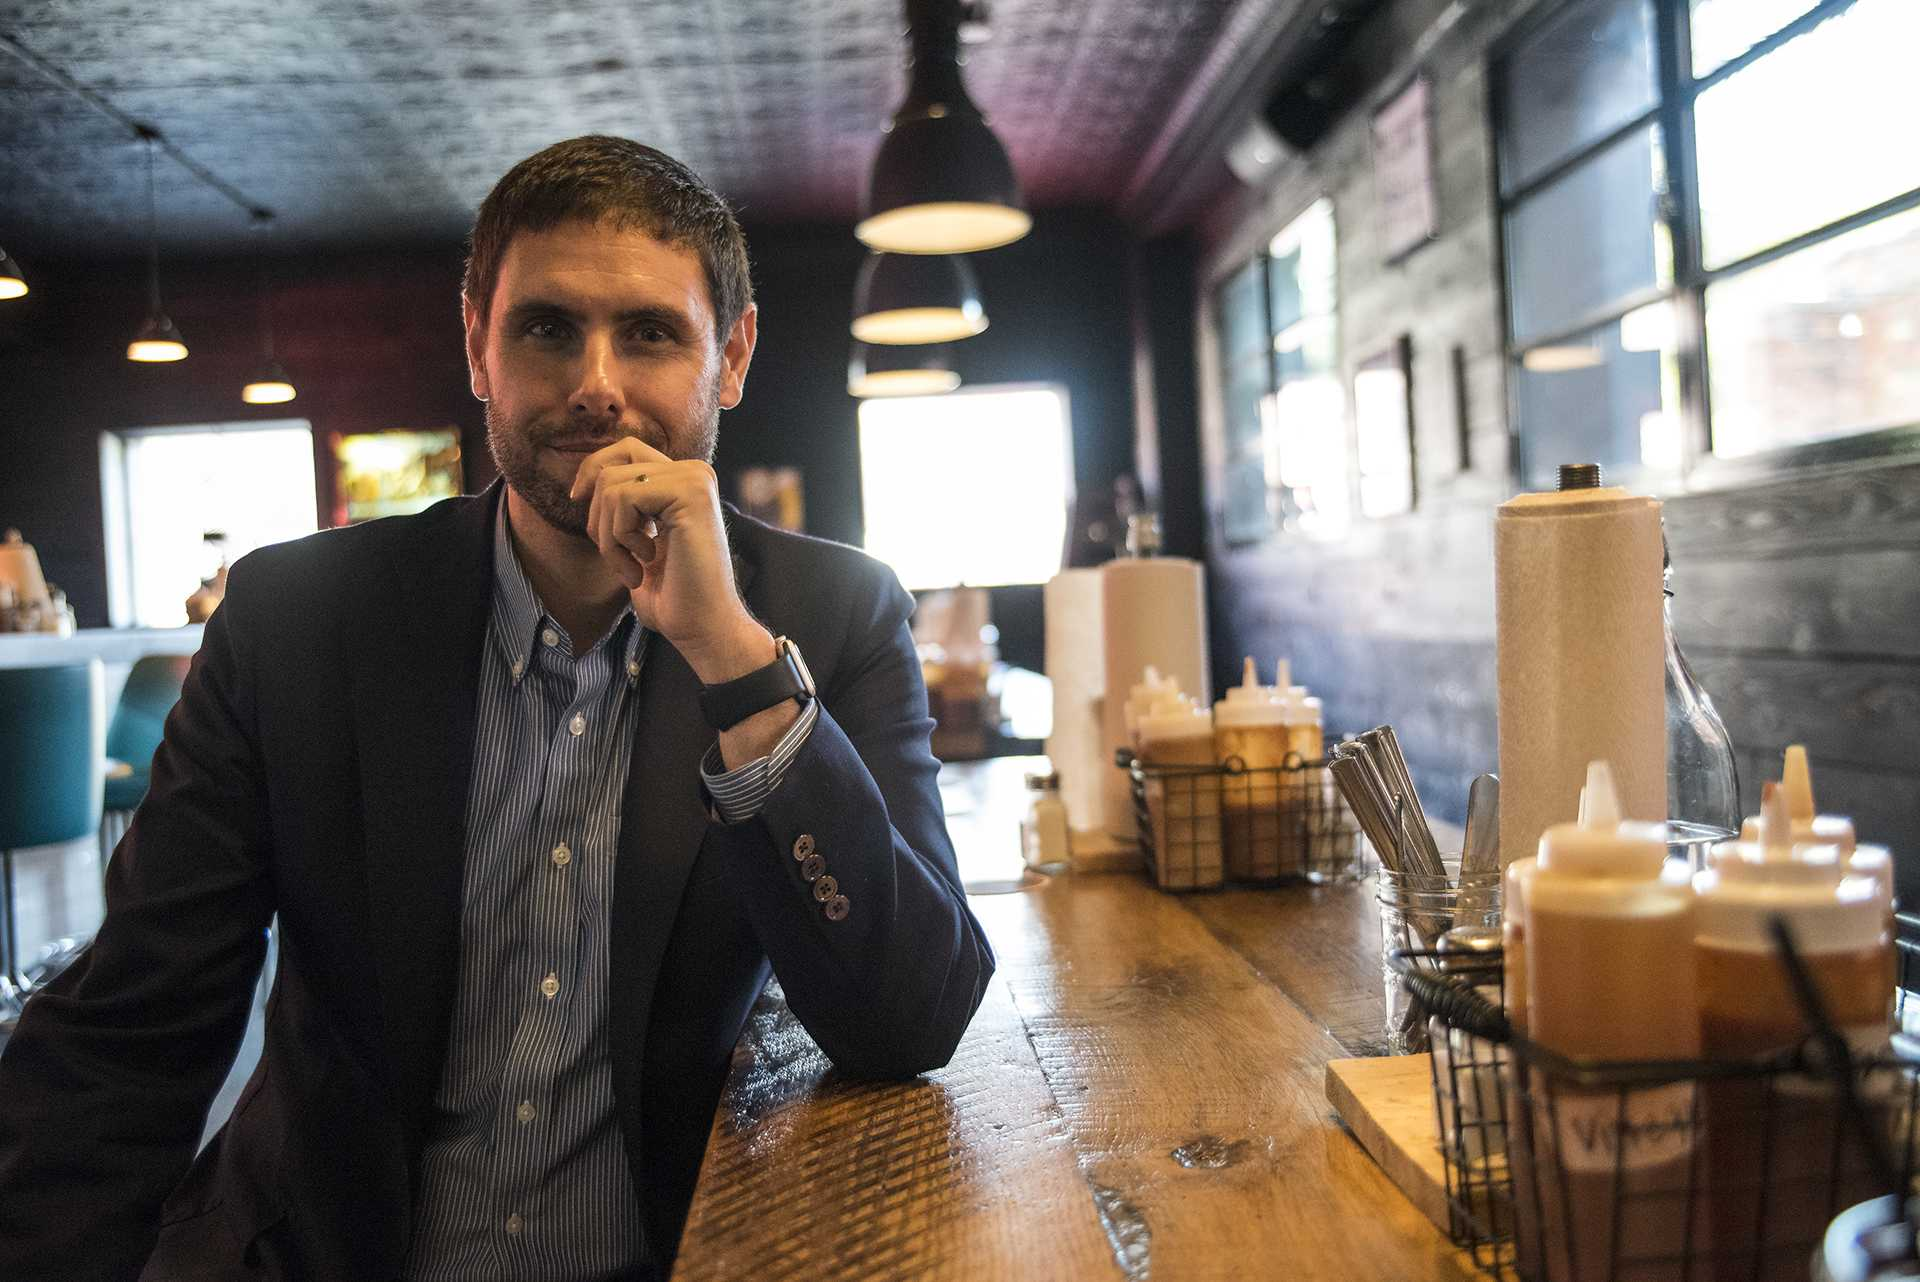 State Sen. Nate Boulton D-Iowa hosted a meet and greet lunch with the Chamber of Commerce at Mosley's on Wednesday, Nov. 8, 2017. Boulton is running in the 2018 gubernatorial race on multiple platforms including good quality of life for small communities. (Ben Smith/The Daily Iowan)